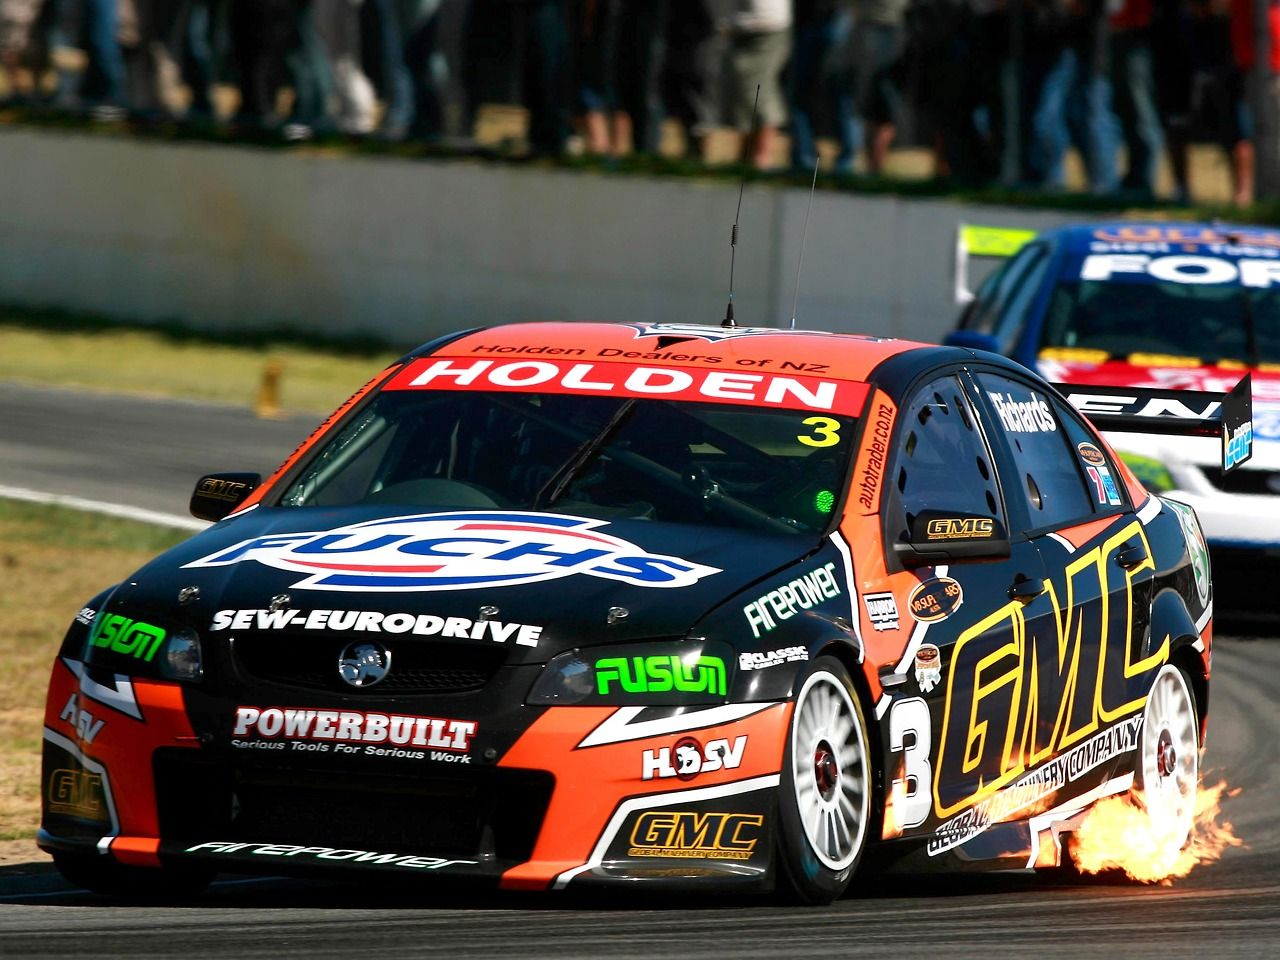 Holden Commodore Race Car Super Cars Racing Holden Commodore